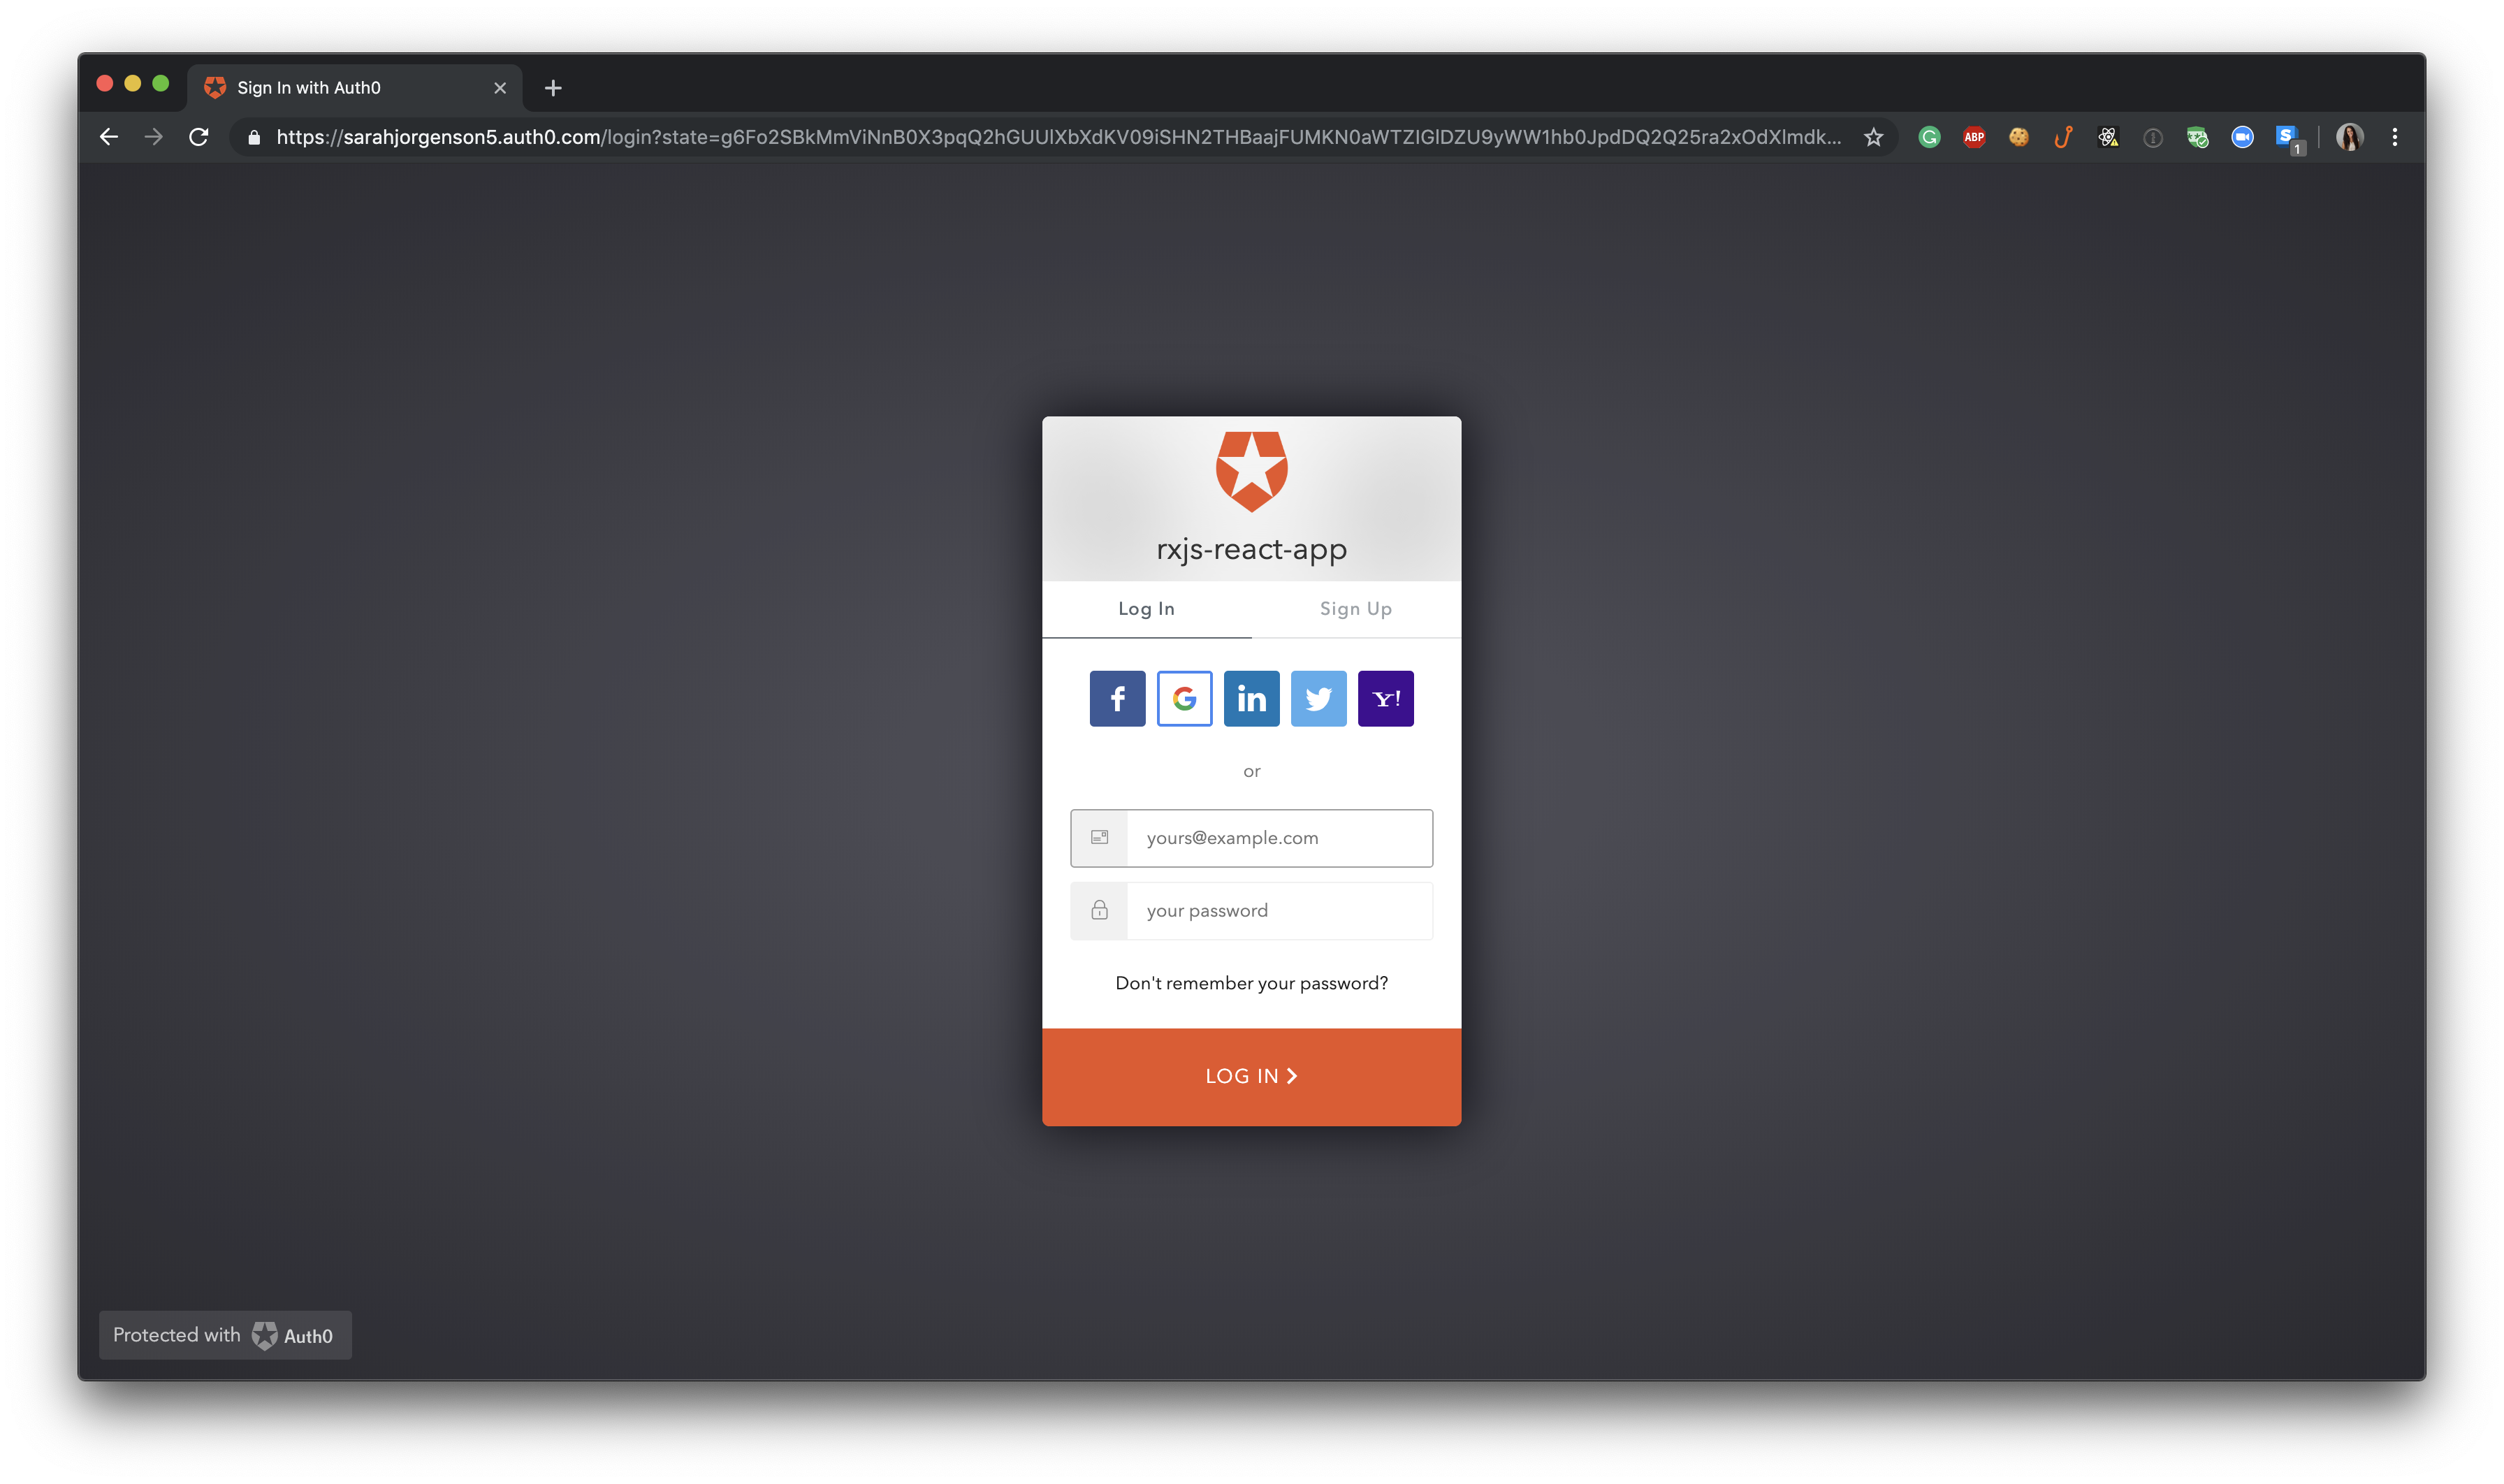 Application running locally - Auth0 Log In Modal